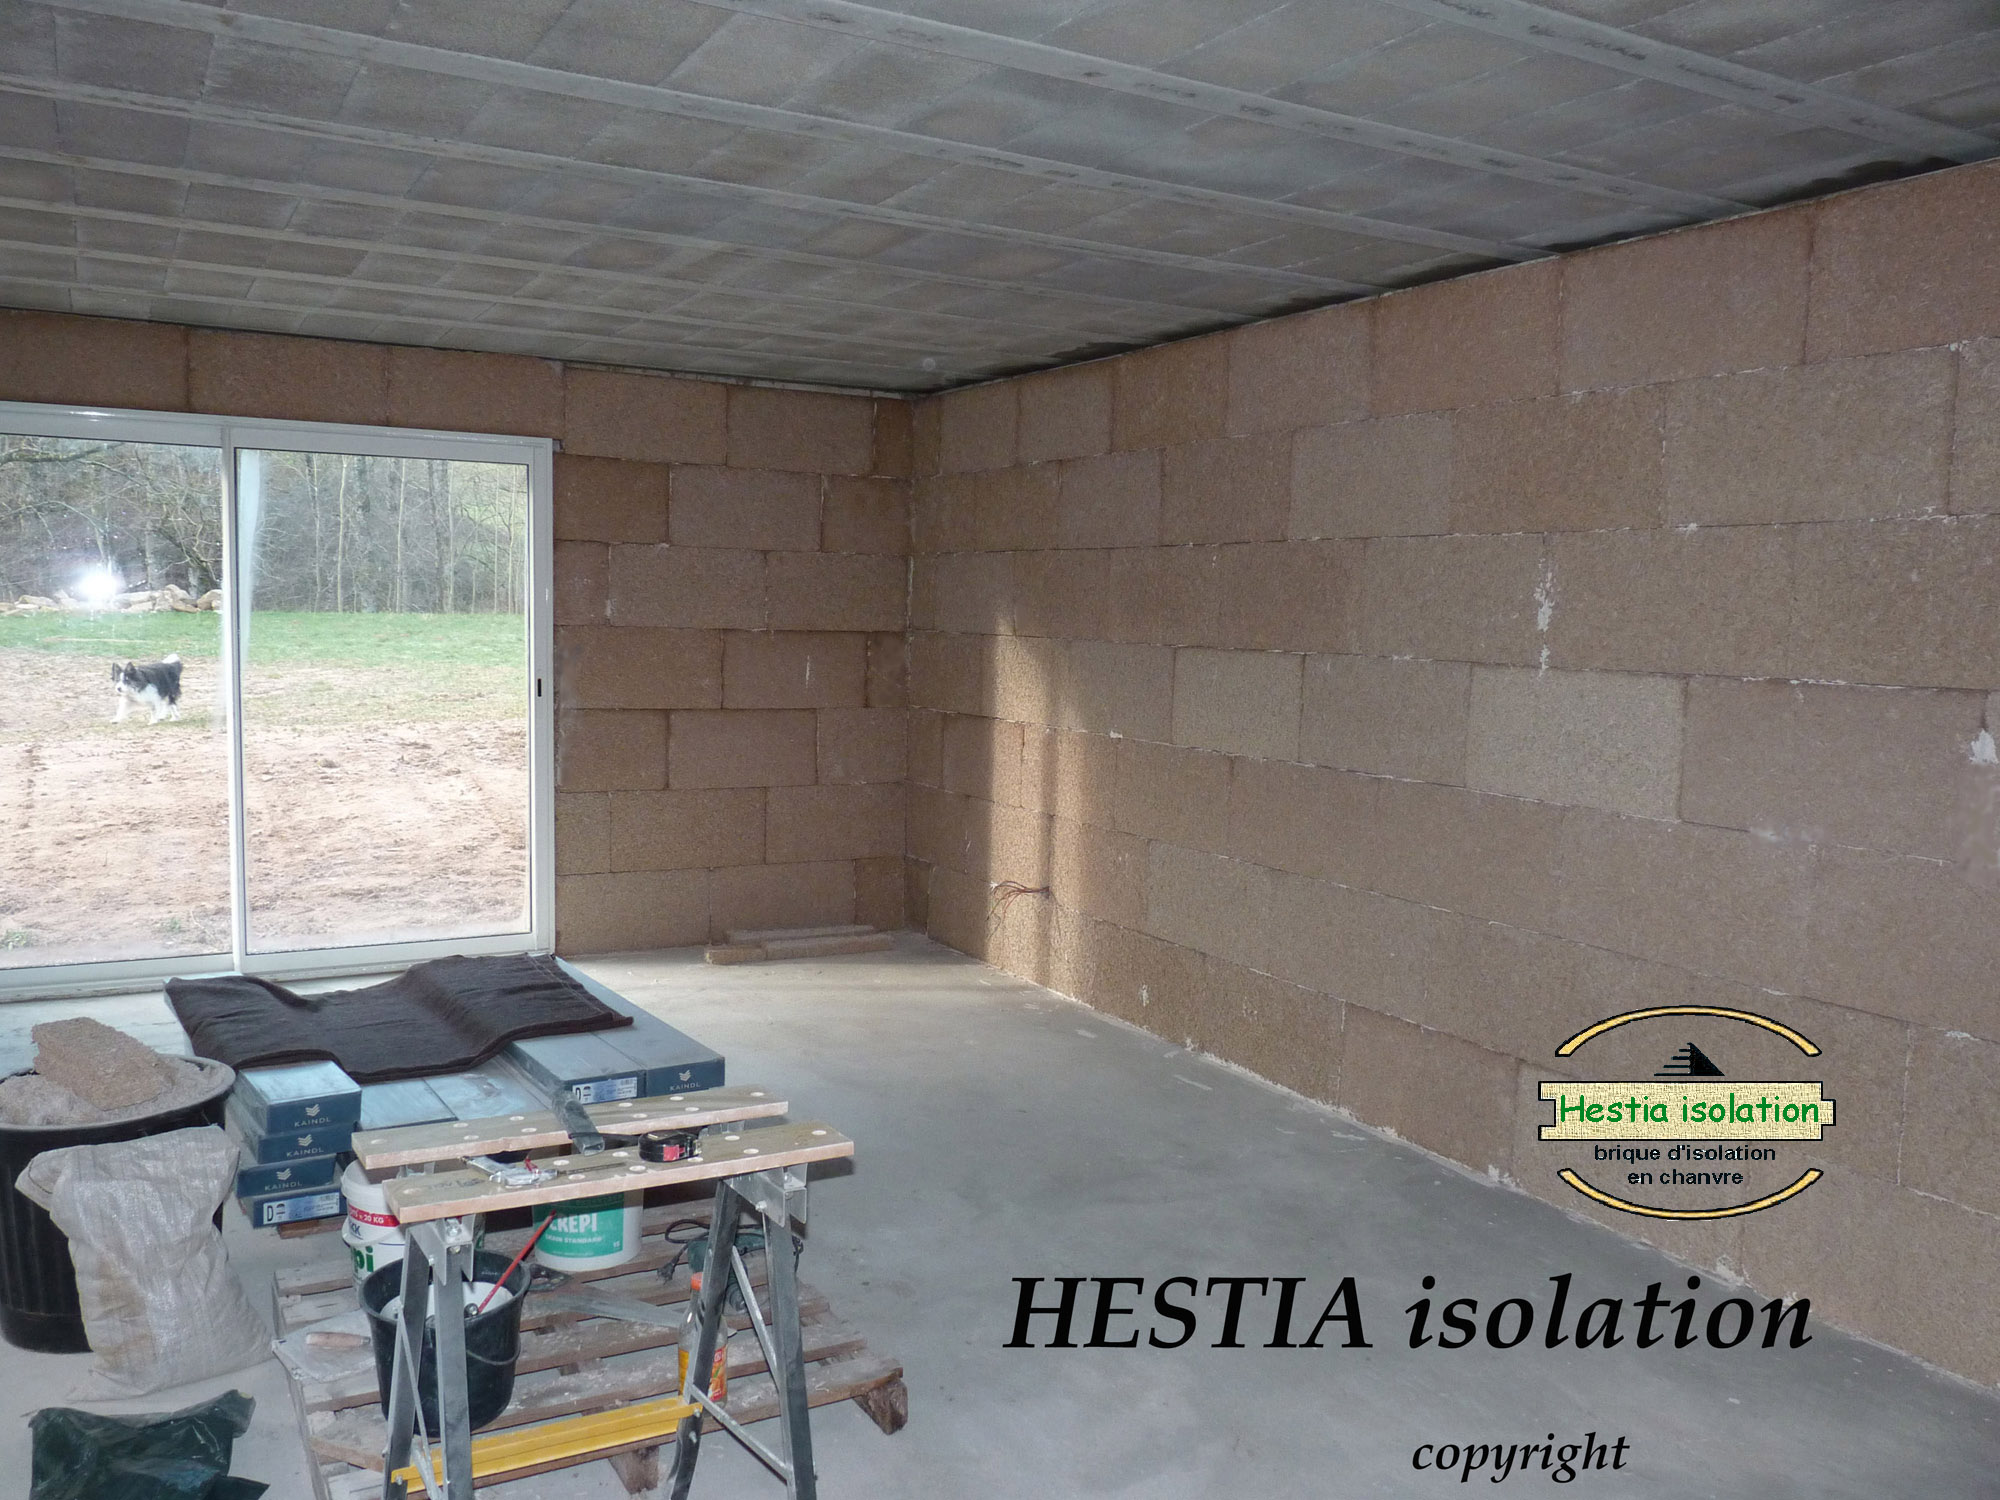 salle de yoga isolation brique chanvre hestia isolant phonique haute performance thermique naturel bloc